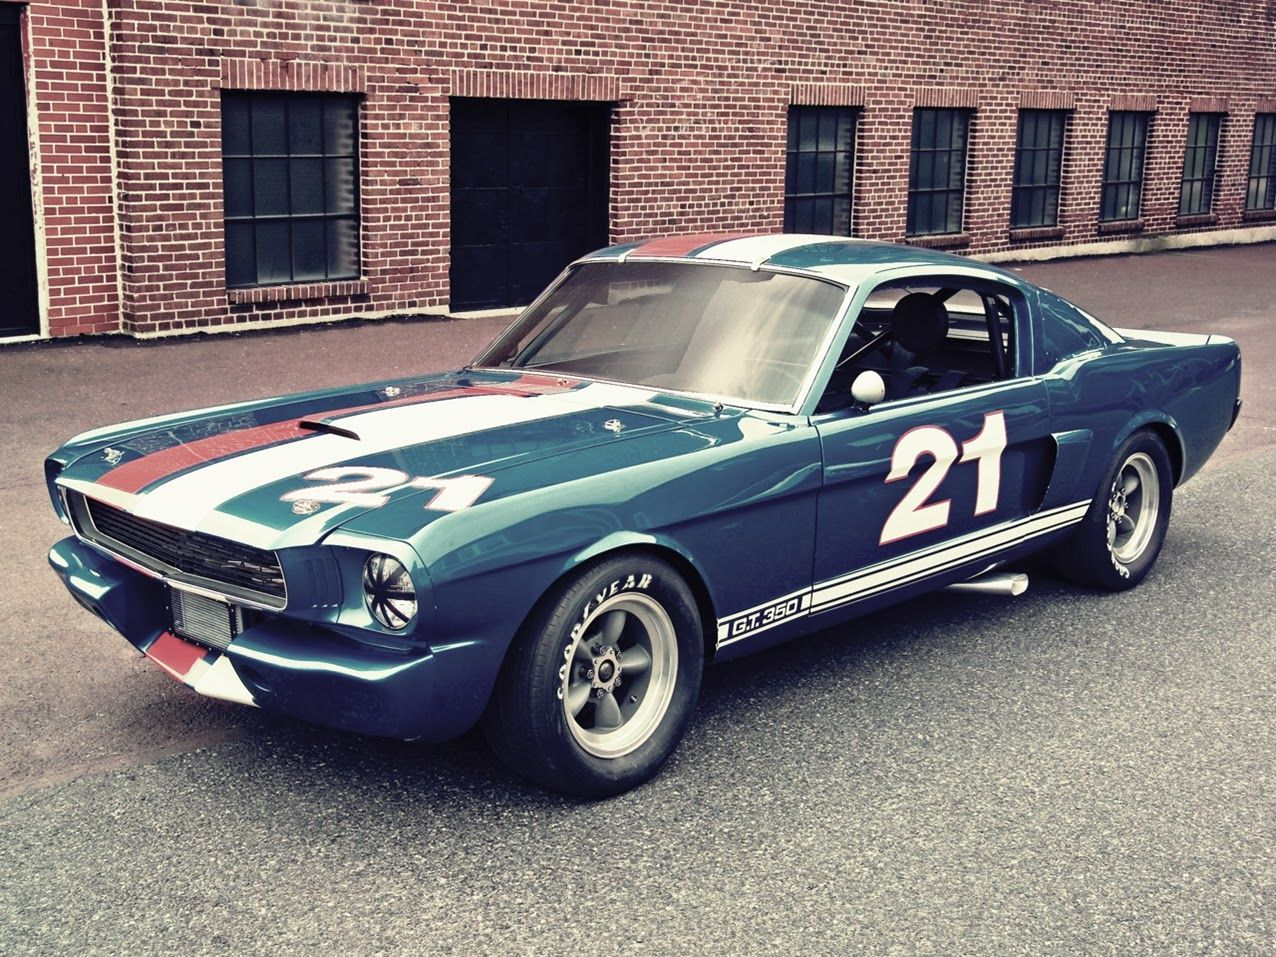 Ford Mustang Shelby GT350 R (1966) Ford mustang shelby